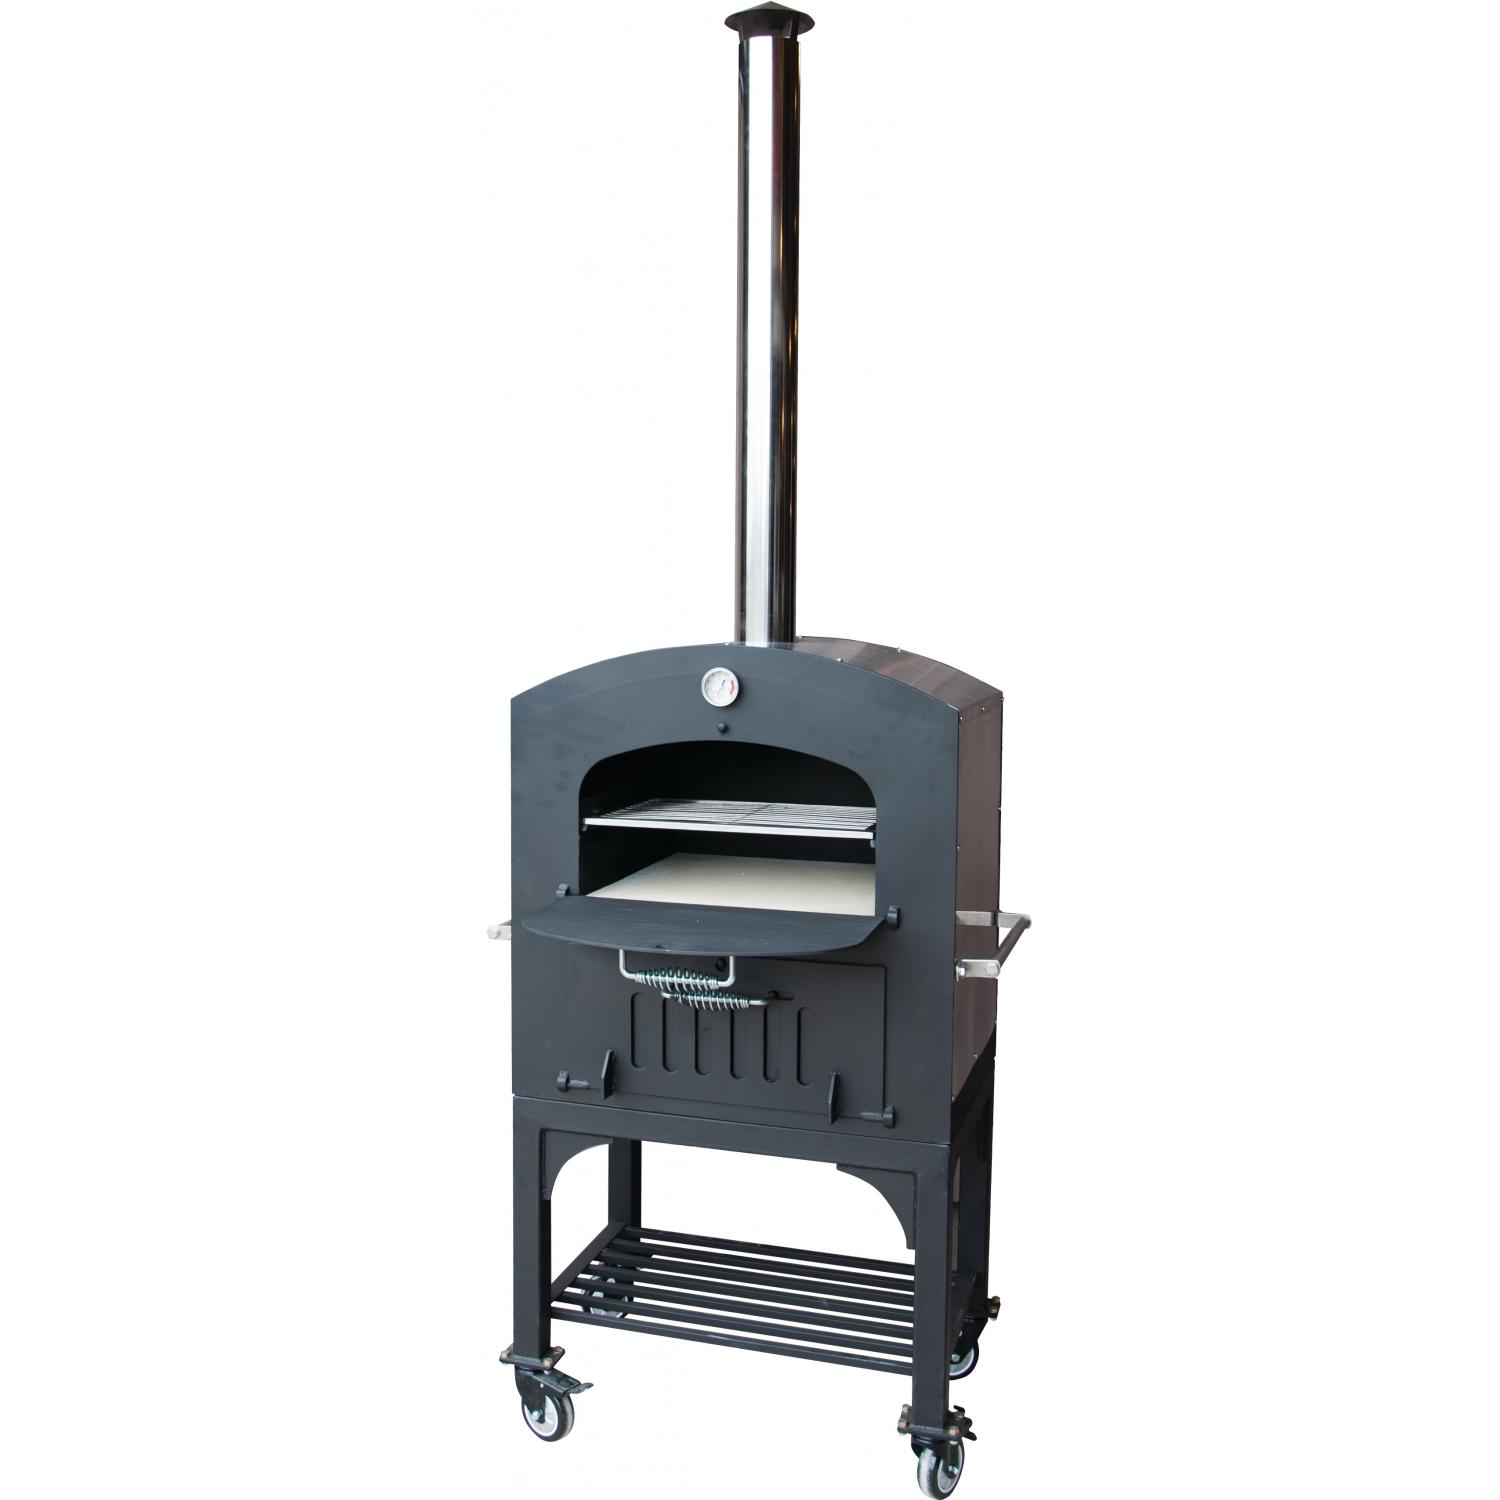 sales for tuscan chef gx c2 deluxe family outdoor wood fired pizza oven on cart prices price. Black Bedroom Furniture Sets. Home Design Ideas